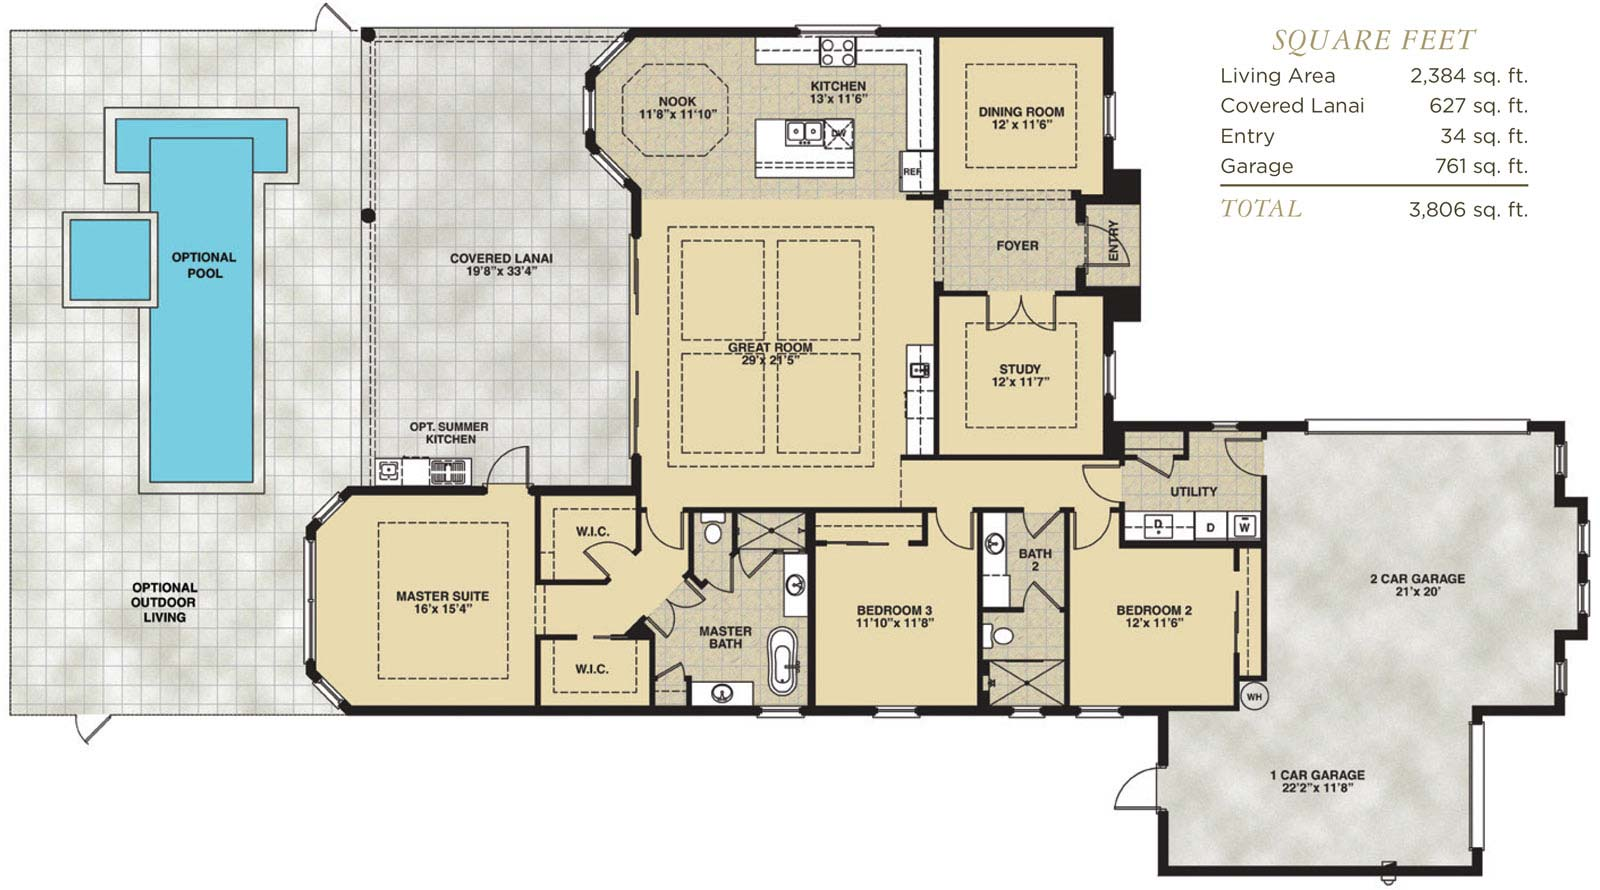 Biscayne Floor Plan in Hidden Harbor Estates, Fort Myers, Stock Construction, Three Bedroom, Two Bath, Great Room, Dining Room, Study, Covered Lanai, 2-Car Garage and 1-Car Garage